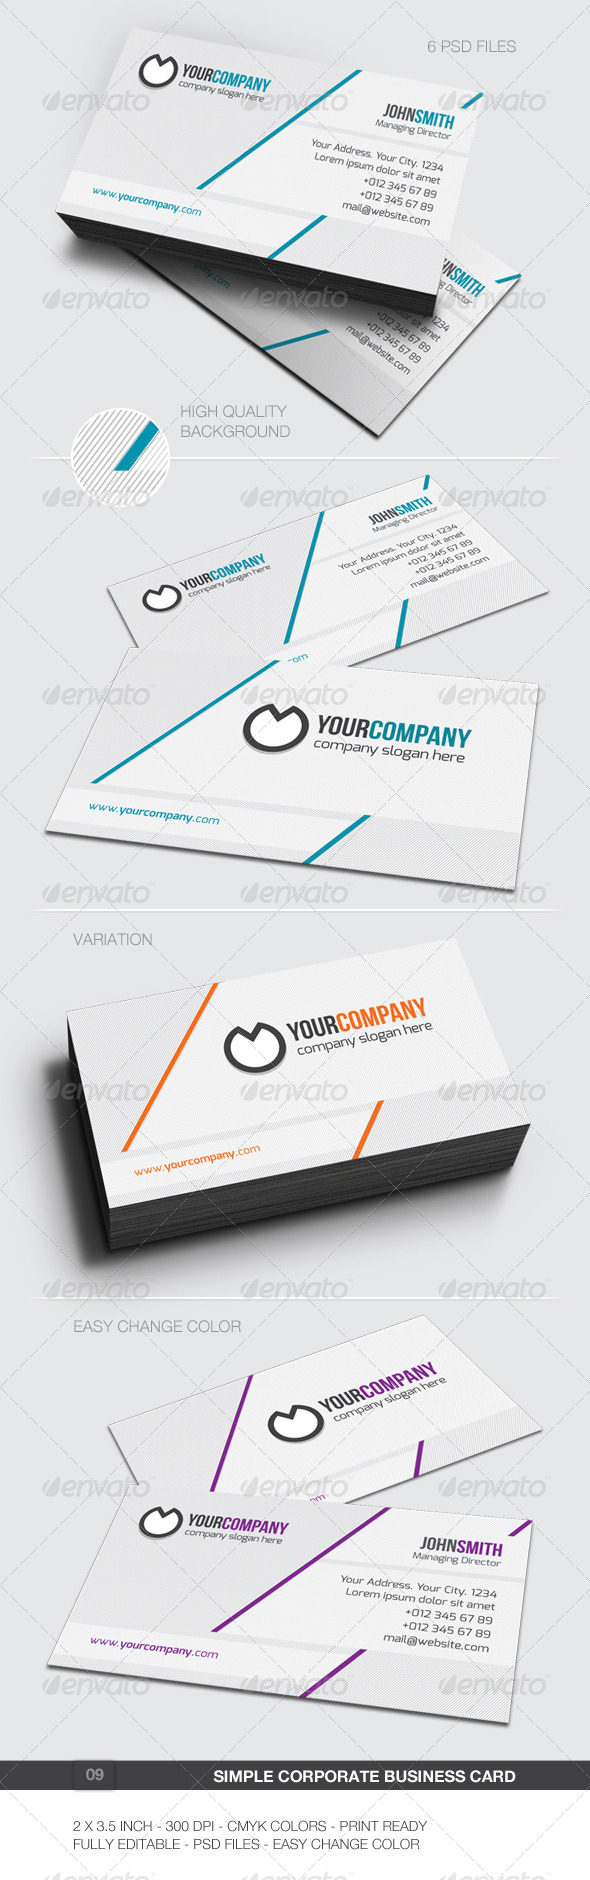 GraphicRiver Simple Corporate Business Card 09 5988915